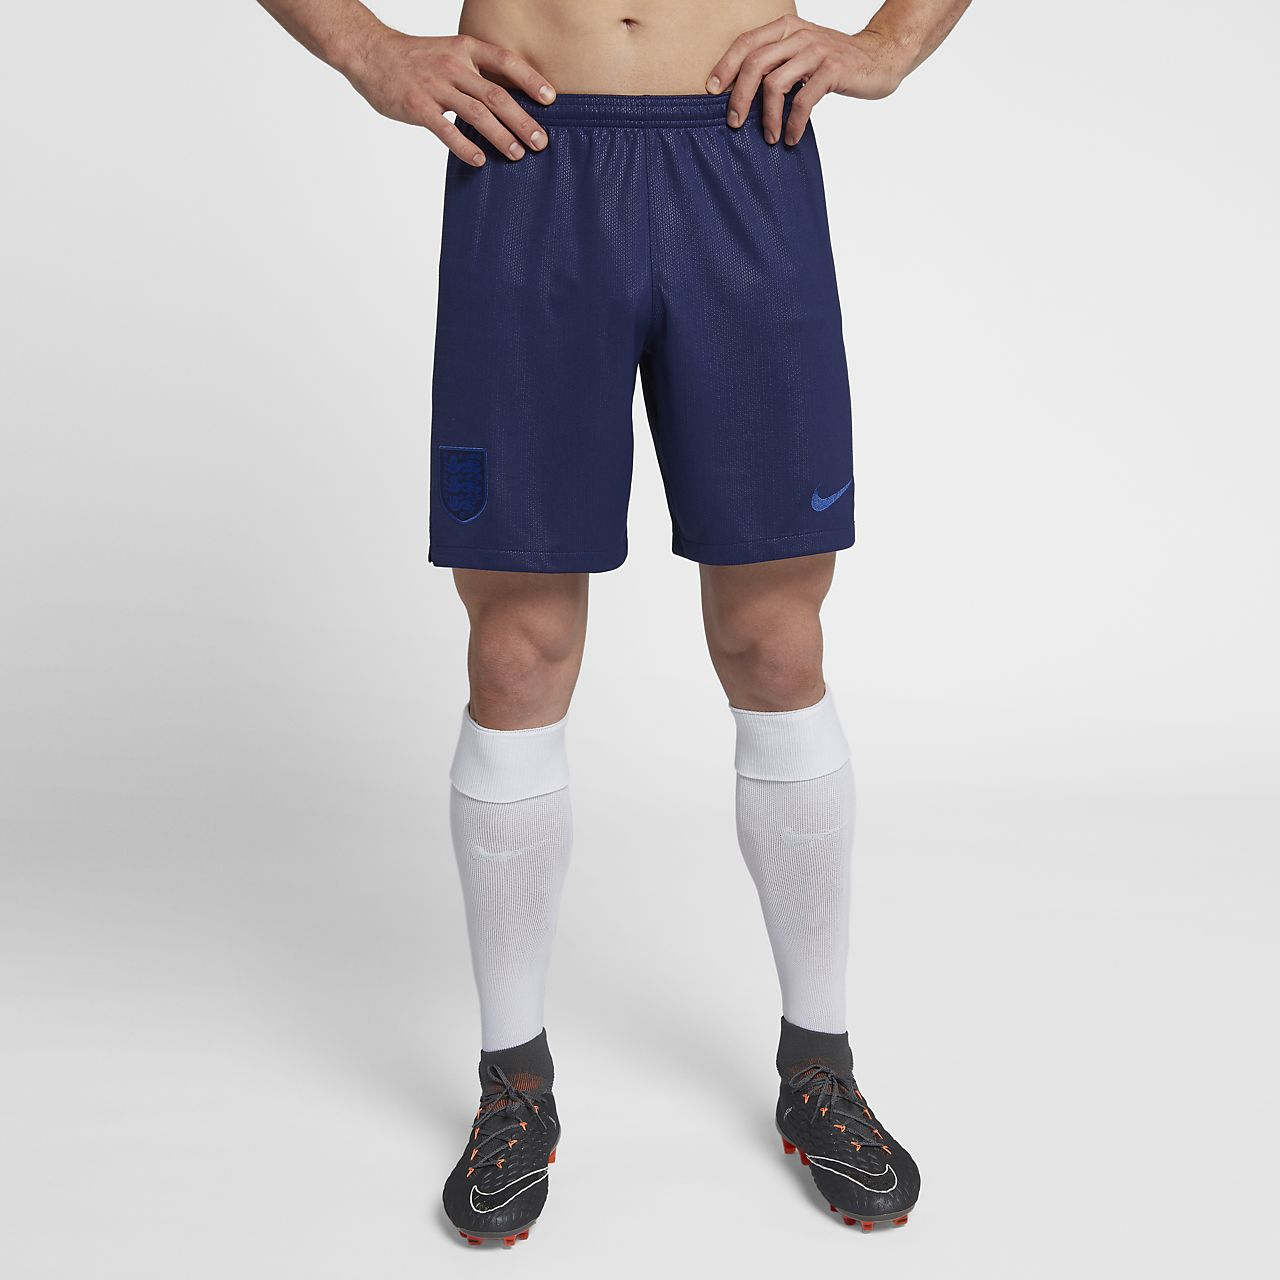 2018 England Stadium Home Men's Football Shorts